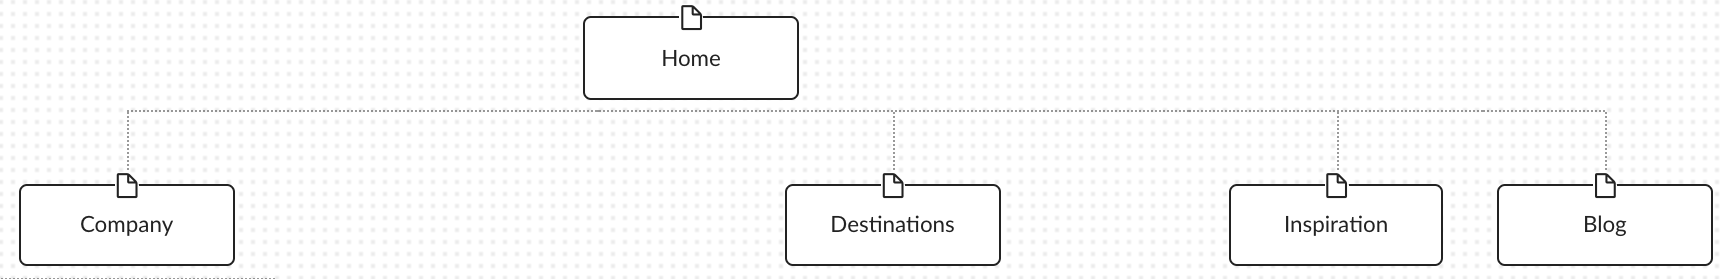 Sitemap Example Navigation